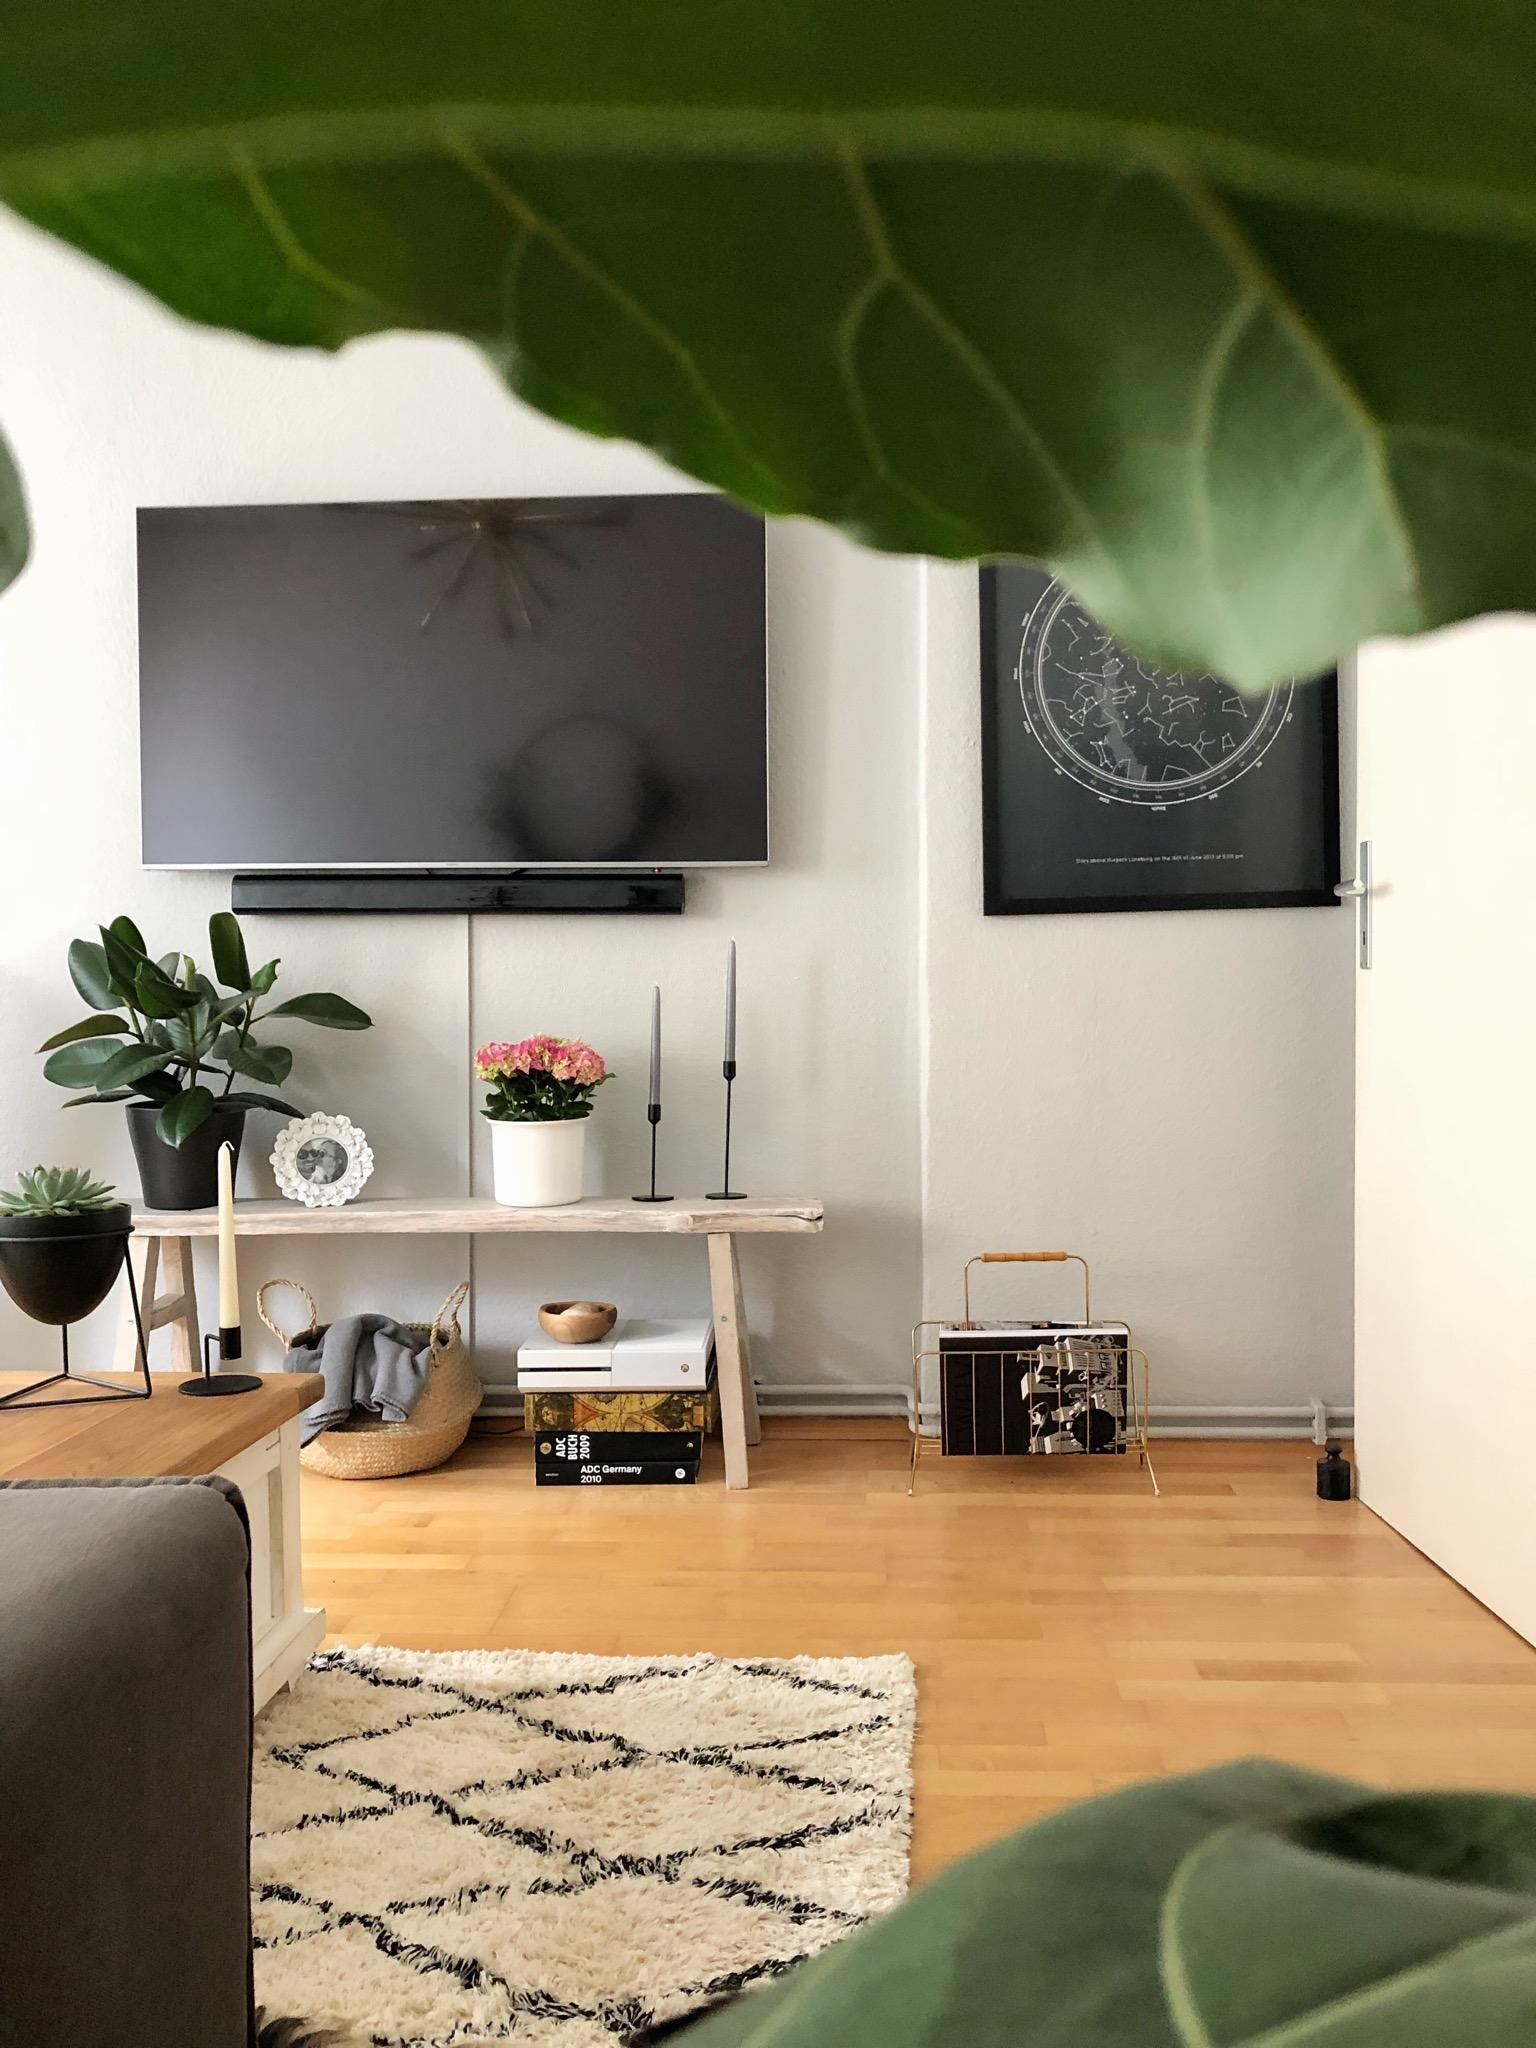 Urban Jungle #plantlove #geigenfeige #interiorgoals #livingroomdecor #scandiliving